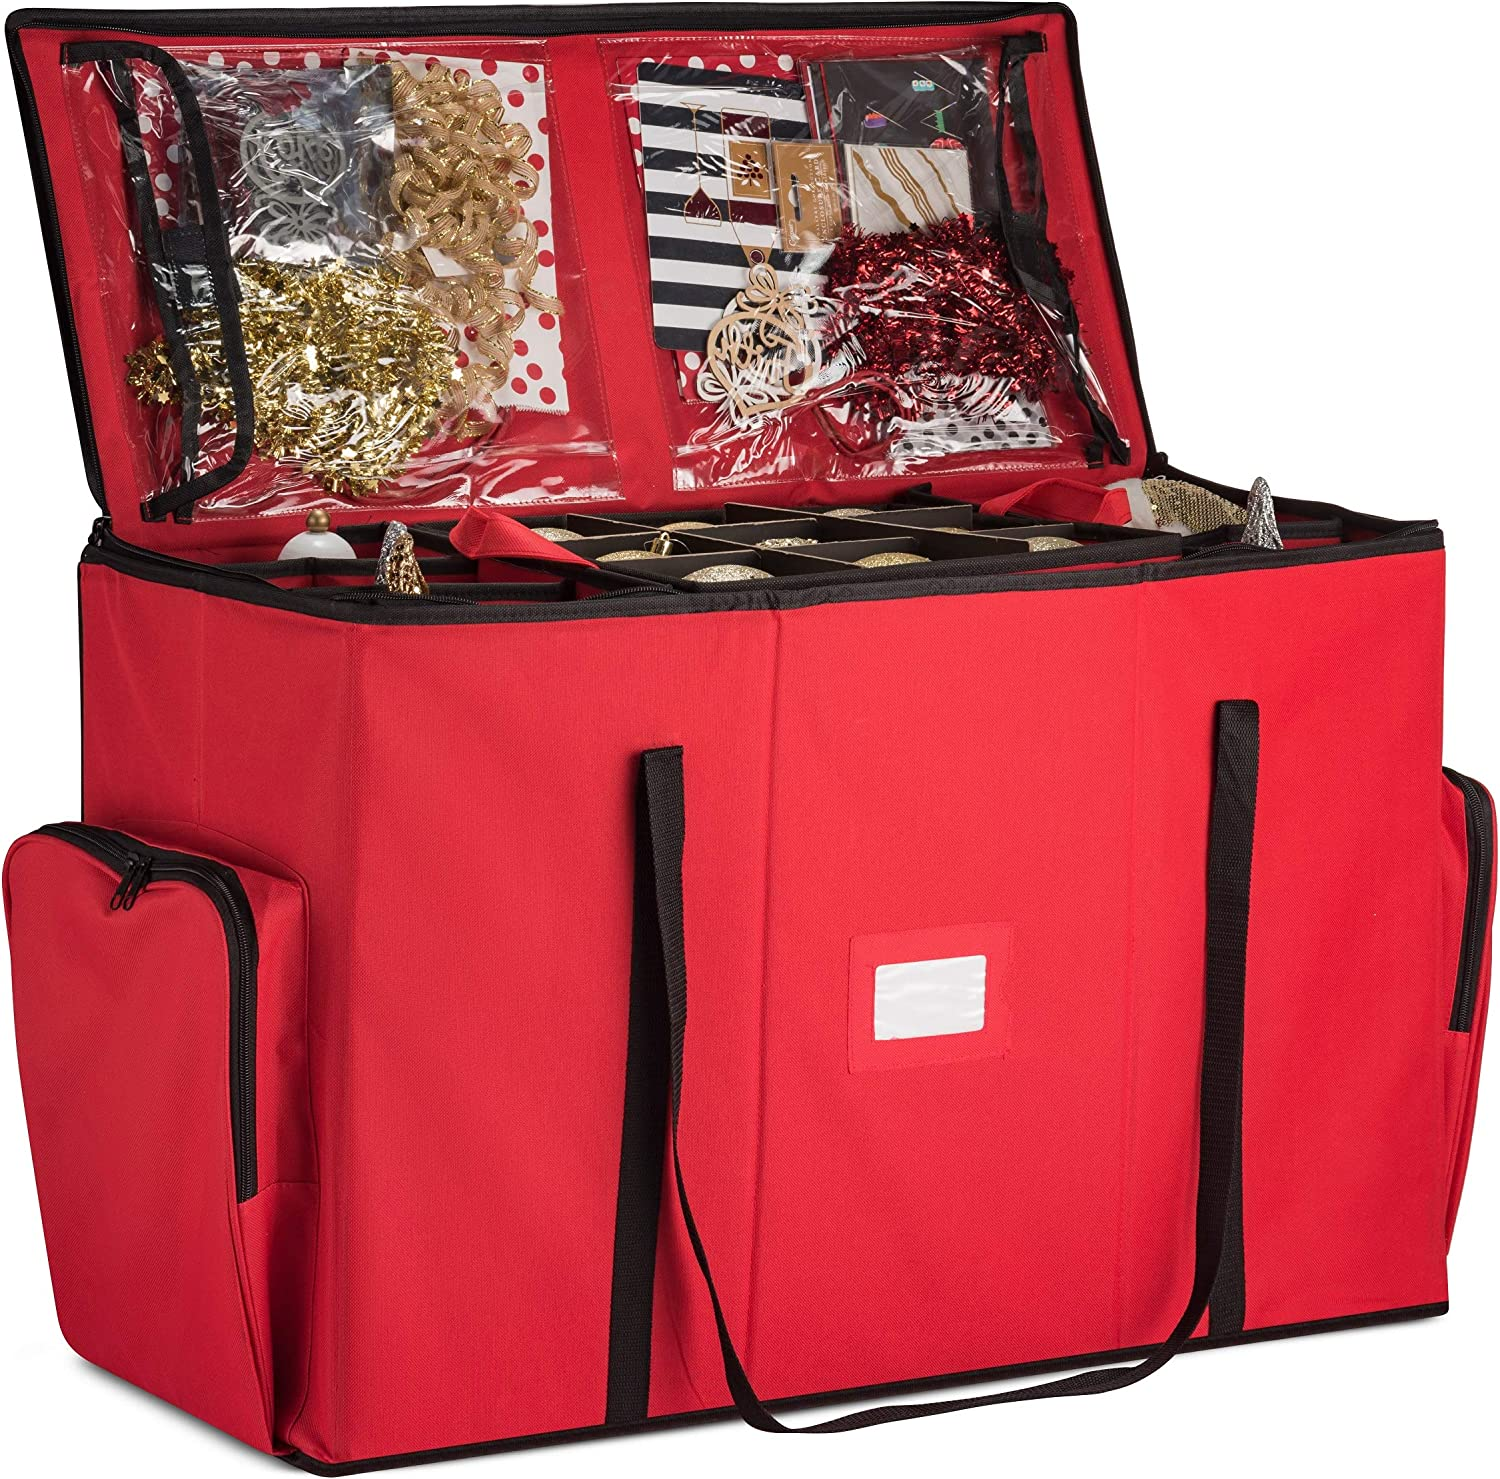 Bombing new work Super Rigid 2-in-1 Christmas Ornament Storage Box Xmas We OFFer at cheap prices Figurin